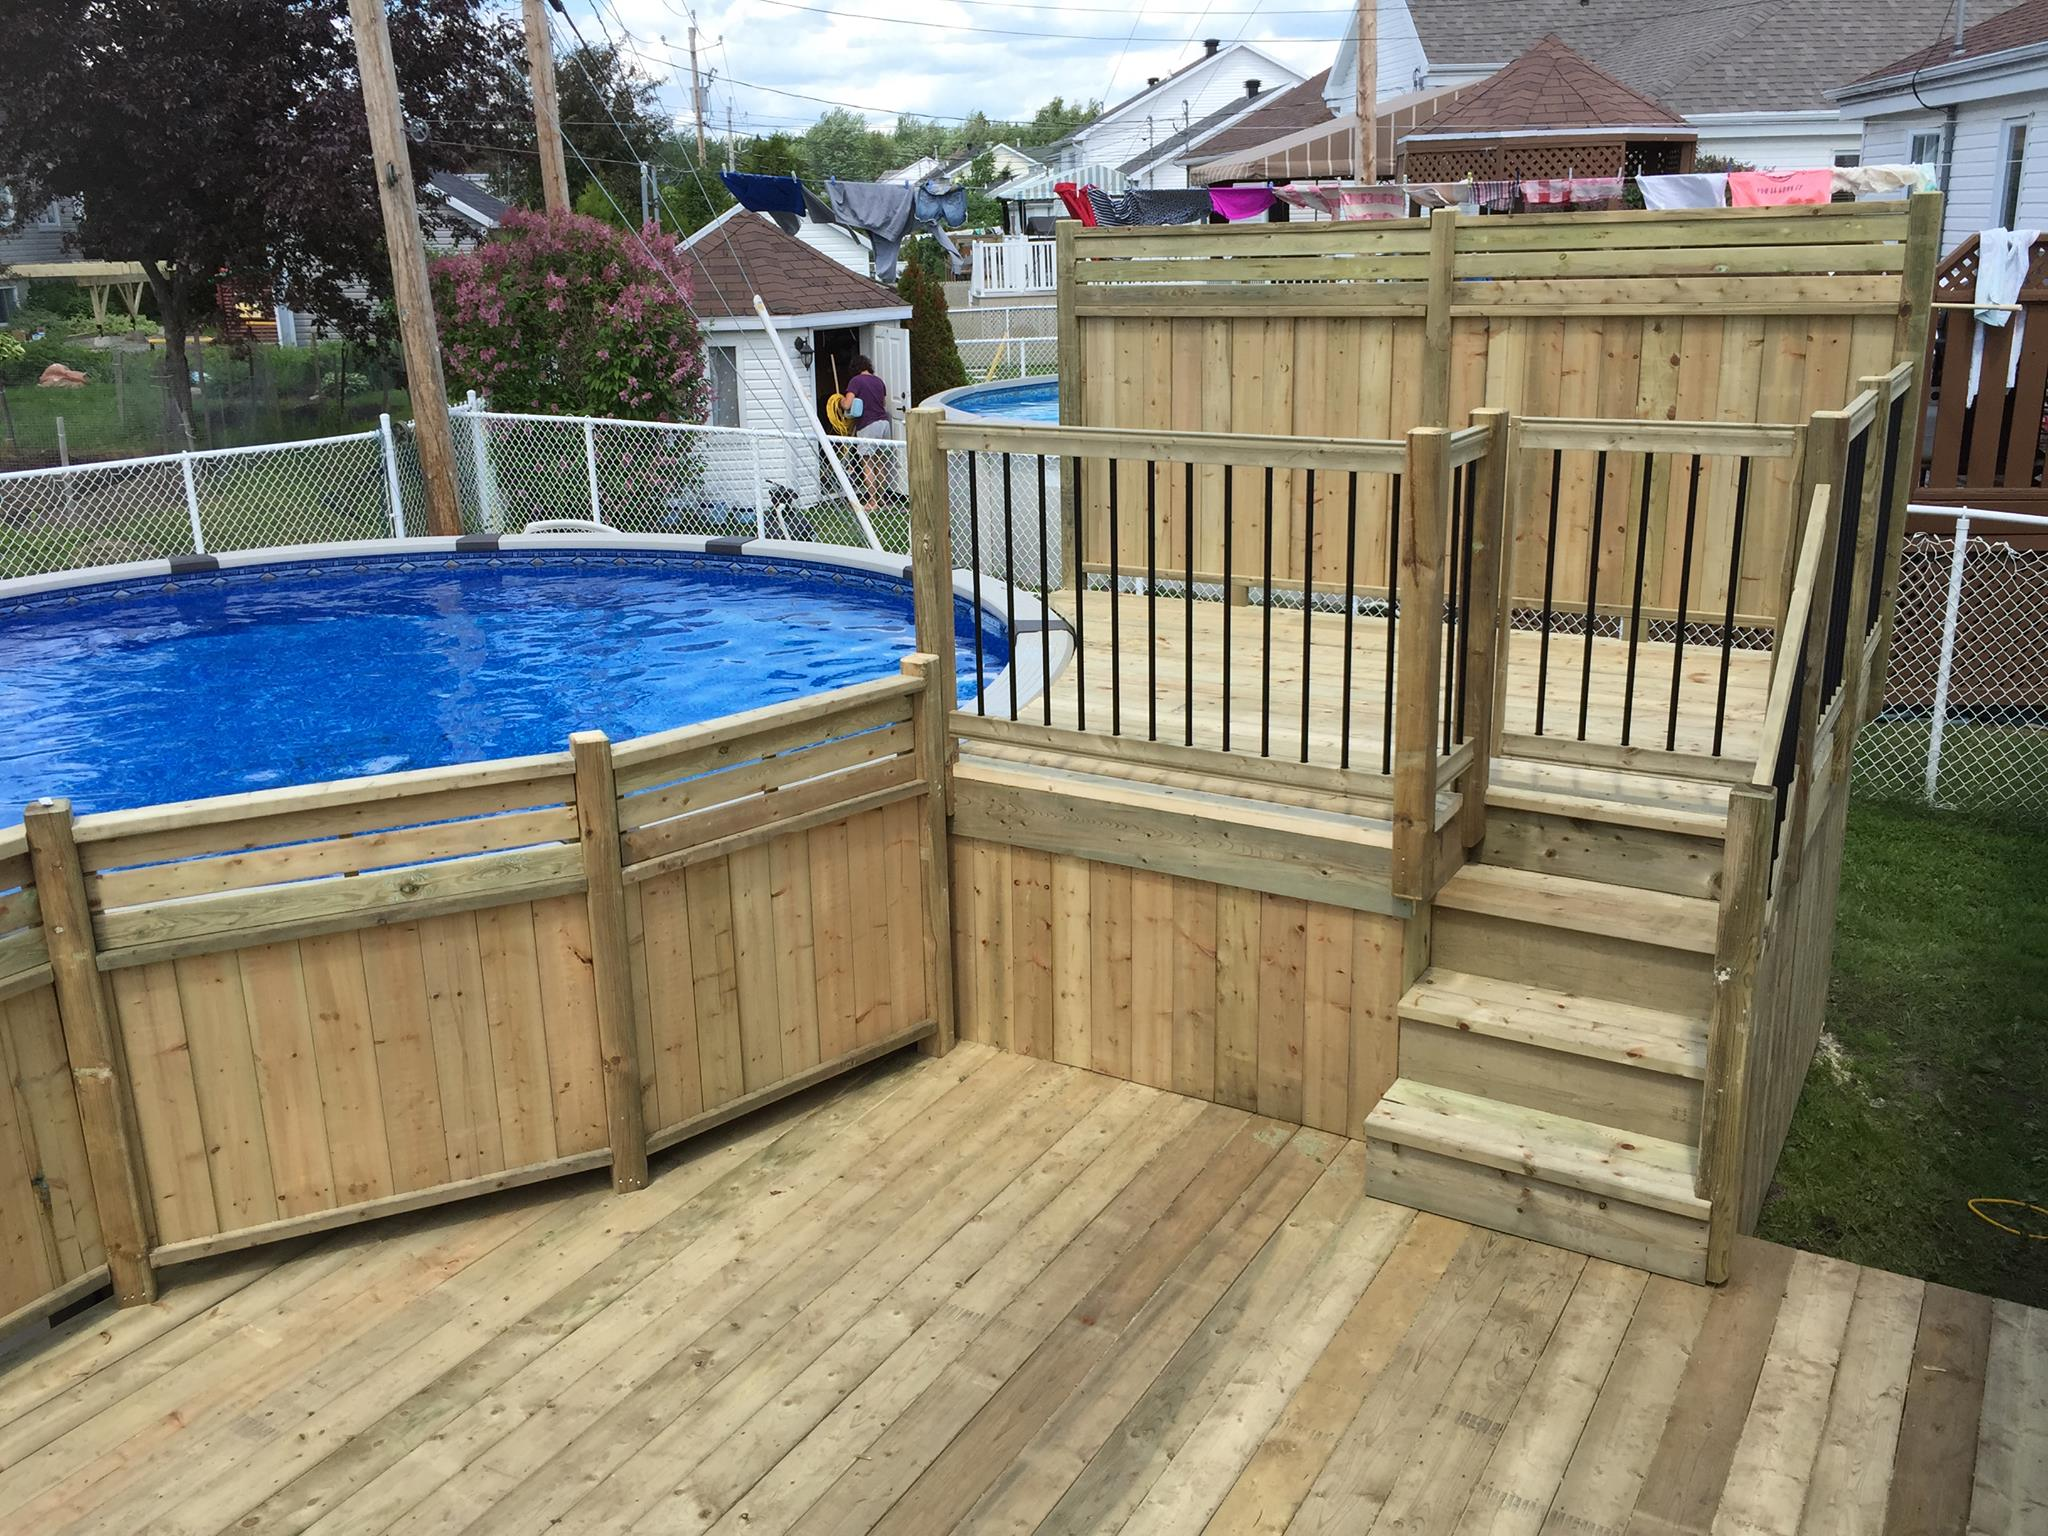 Patios decks piscine patio bois trait for Porte de piscine